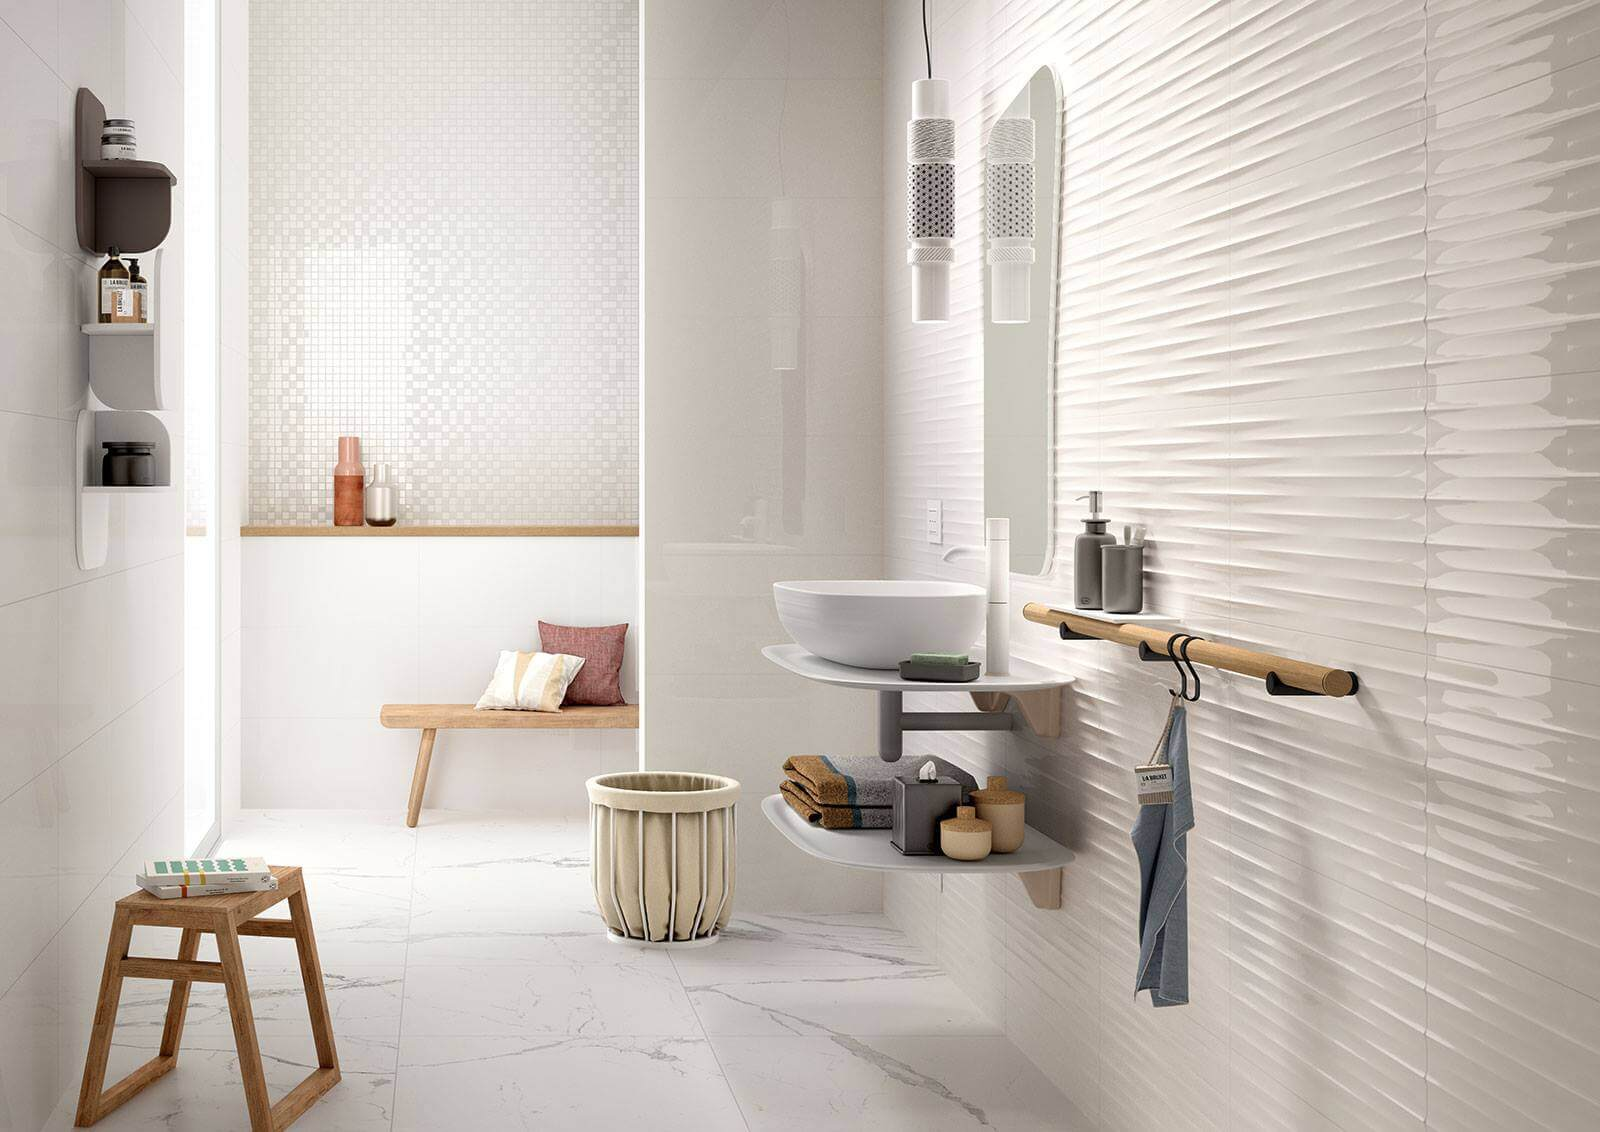 Badtrends 2017 Update Cersaie In Bologna